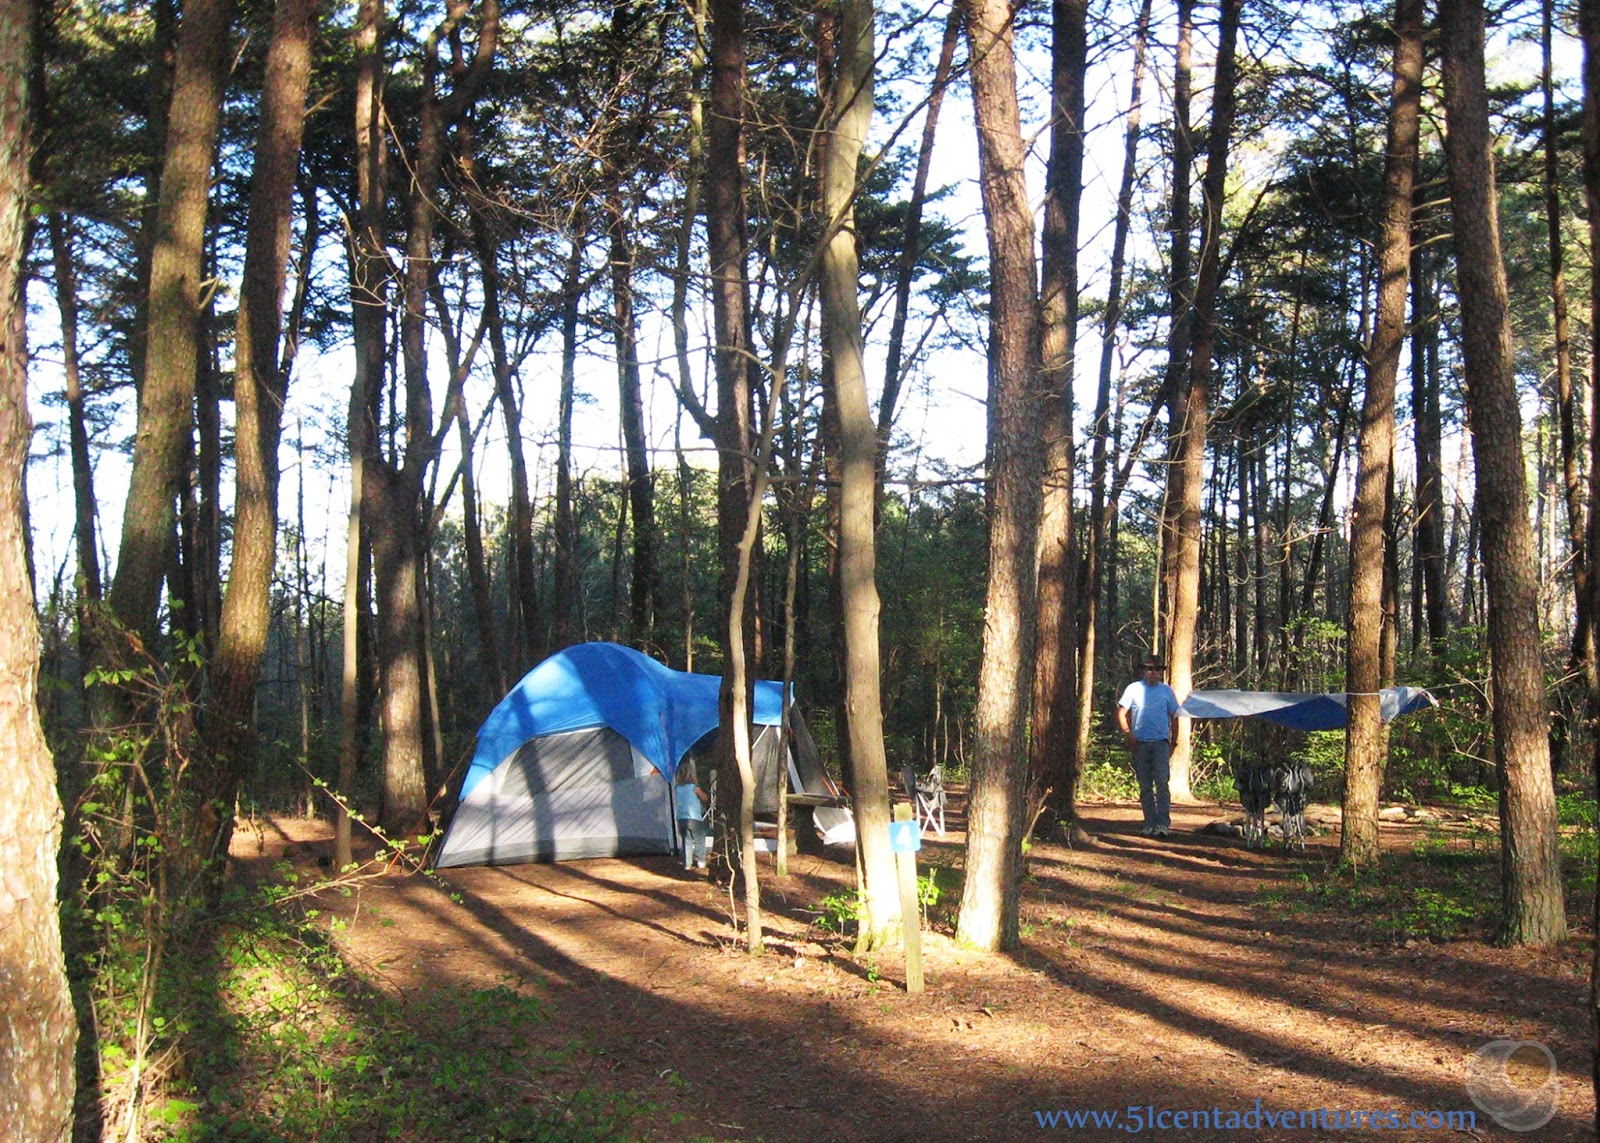 Merveilleux This Campground Costs Only $13.40 Per Night Plus Lodging Tax And A Booking  Fee. We Paid Around $80 For A Total Of Four Nights   What A Deal!